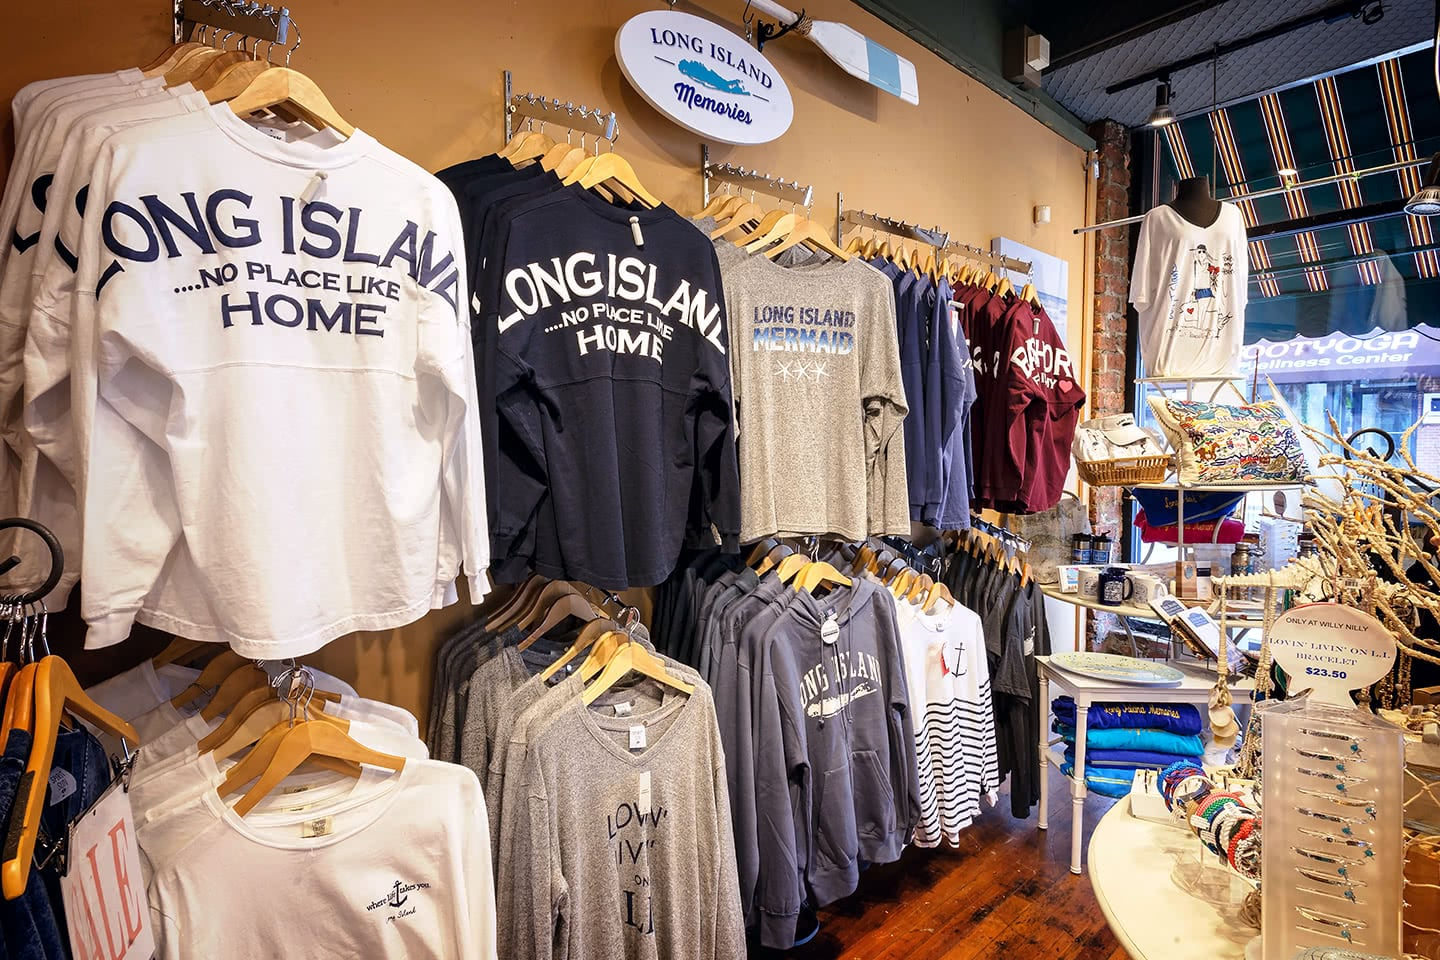 Jerseys and Shirts from the Long Island Memories Collection